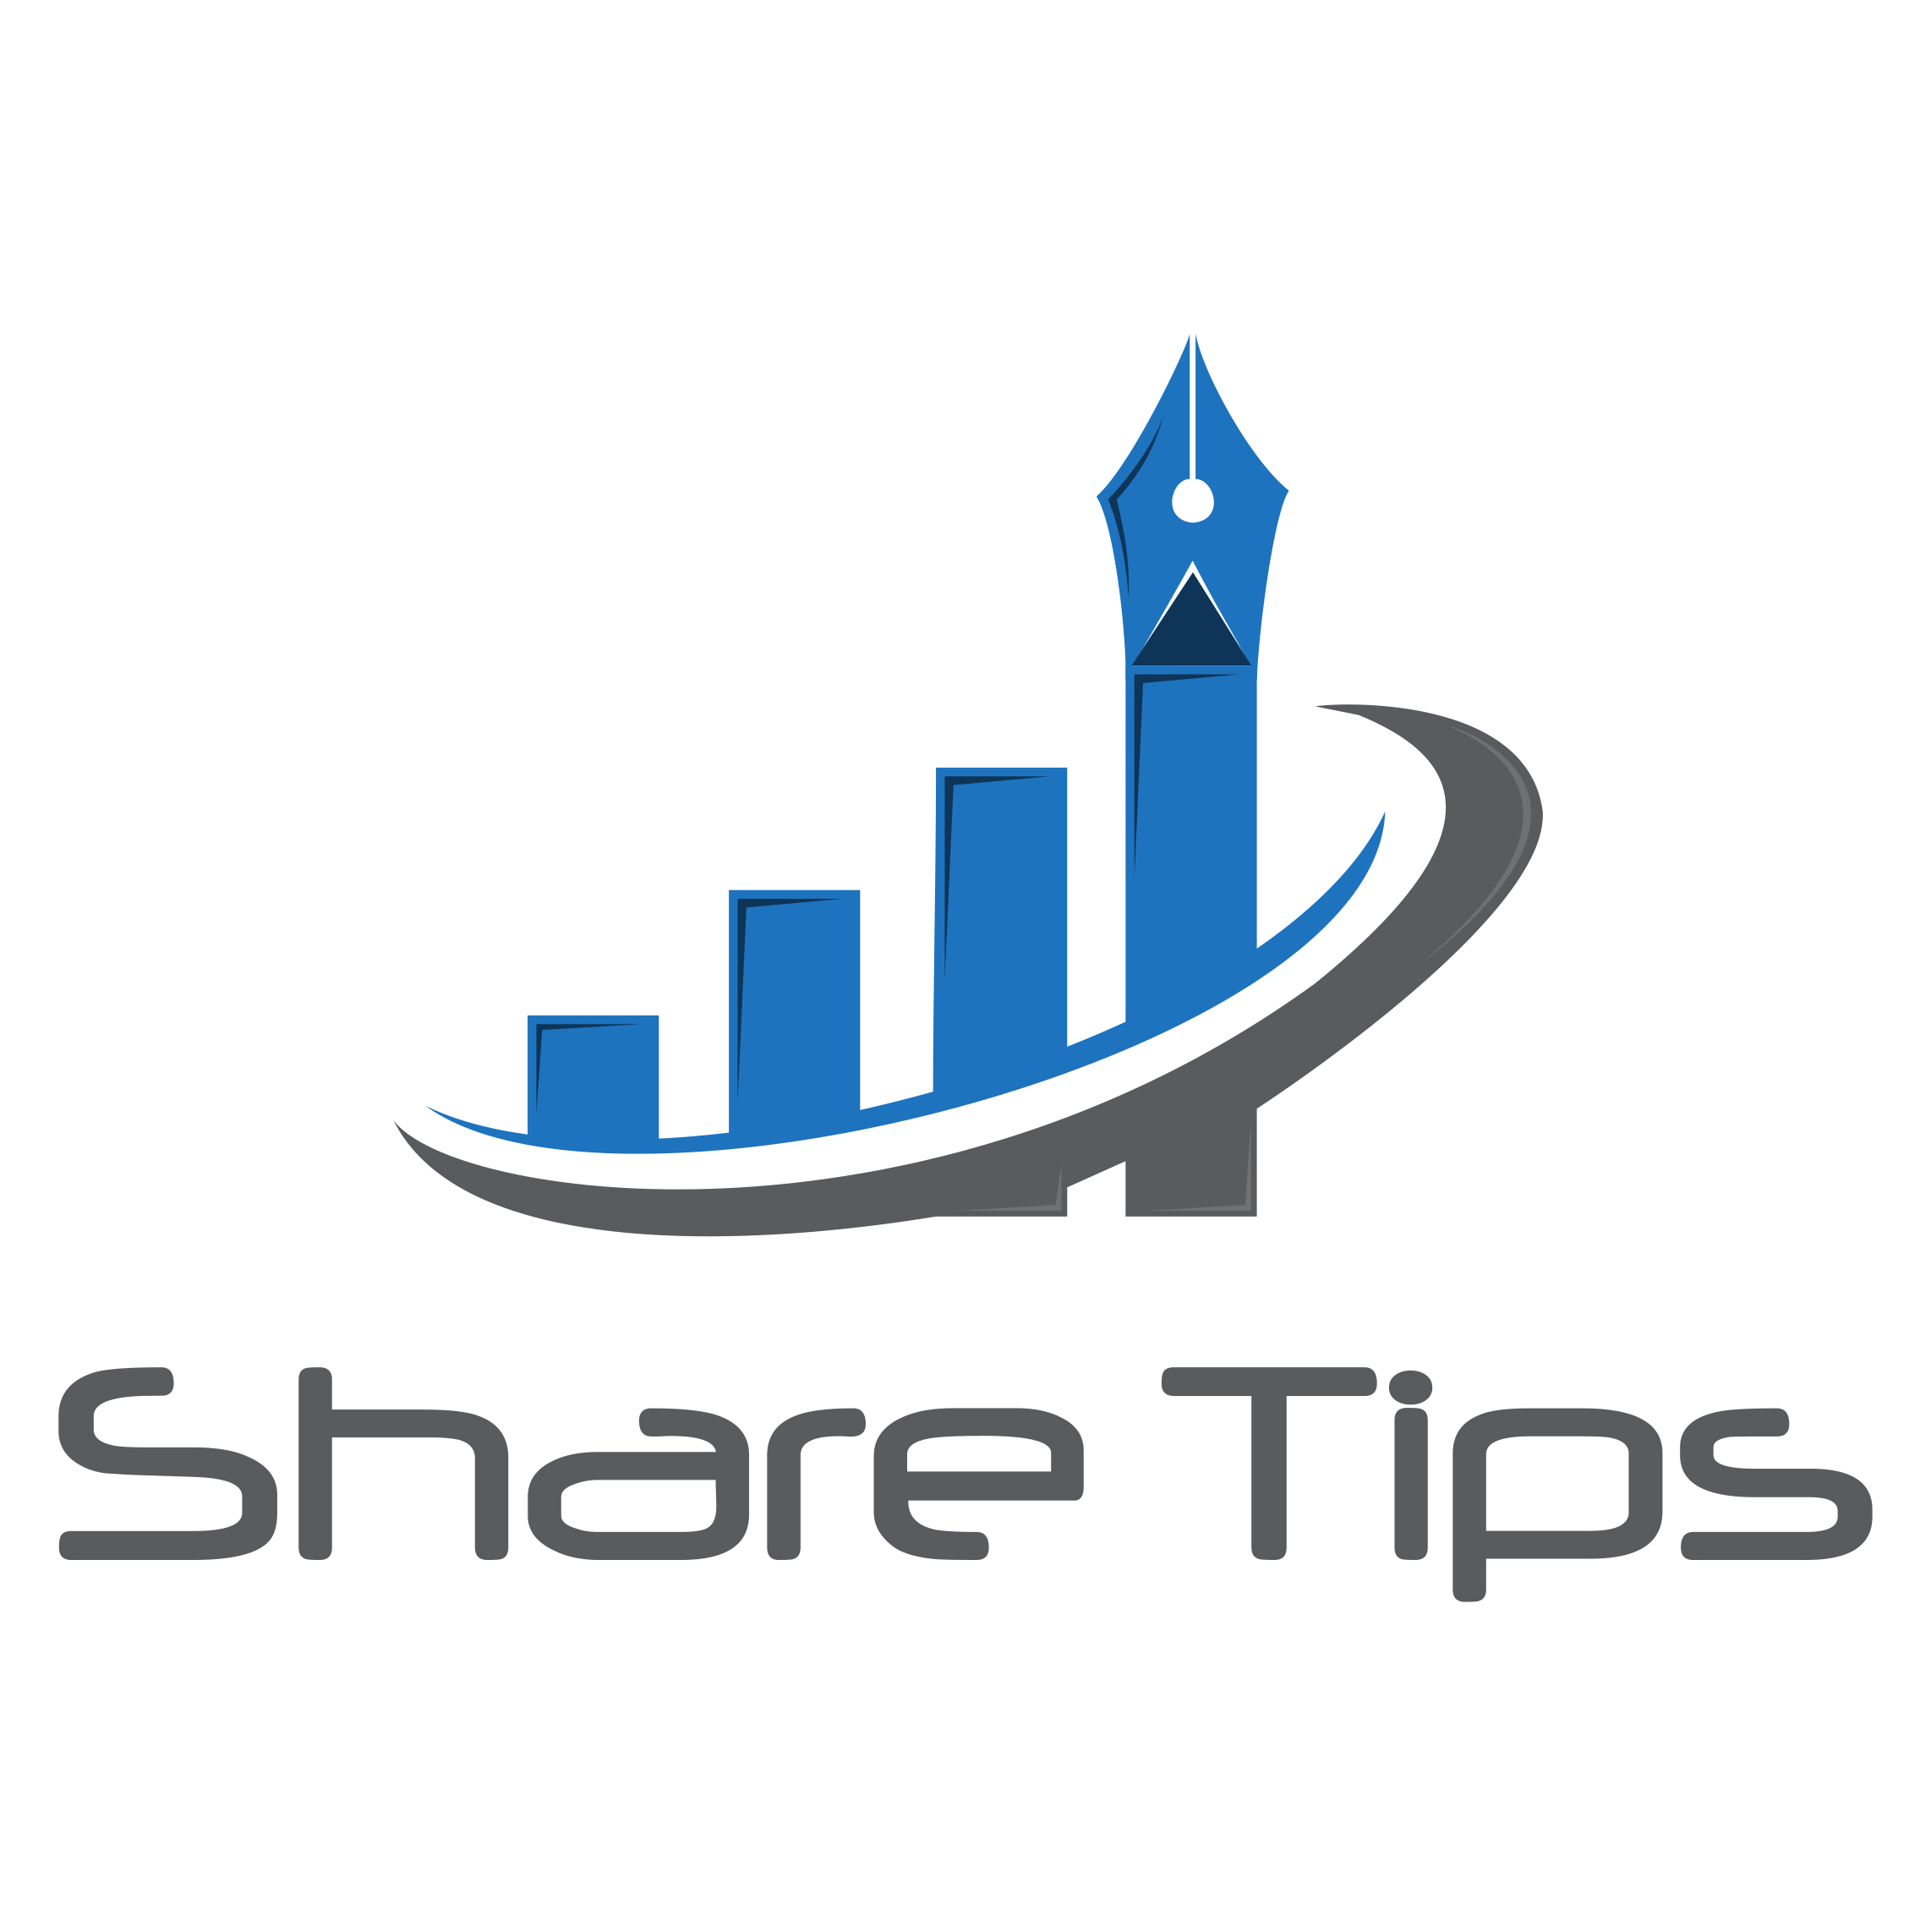 Share Tips – thesharetips.in | Live Share Tips, Intraday Share Tips, Stock Market Tips